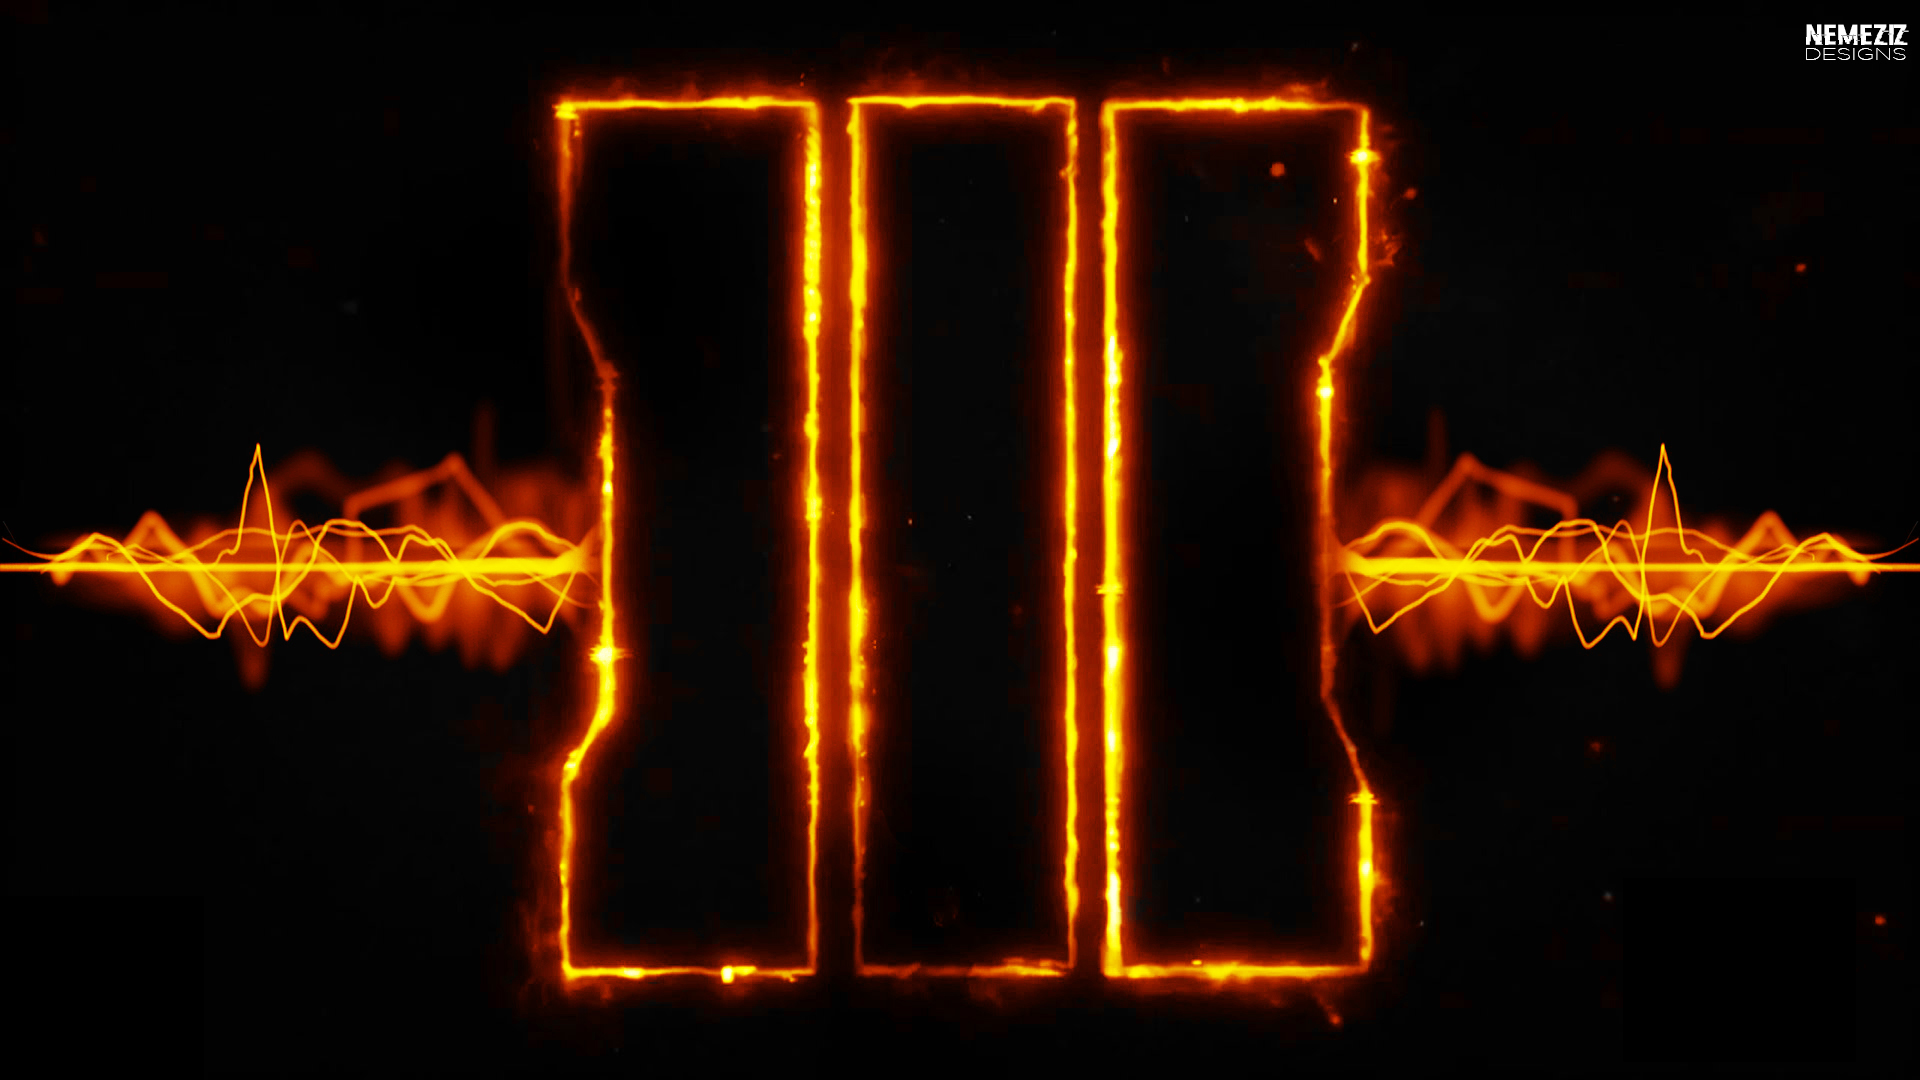 Black Ops 3 Hd Wallpaper: Bo3 Wallpaper Pictures To Pin On Pinterest